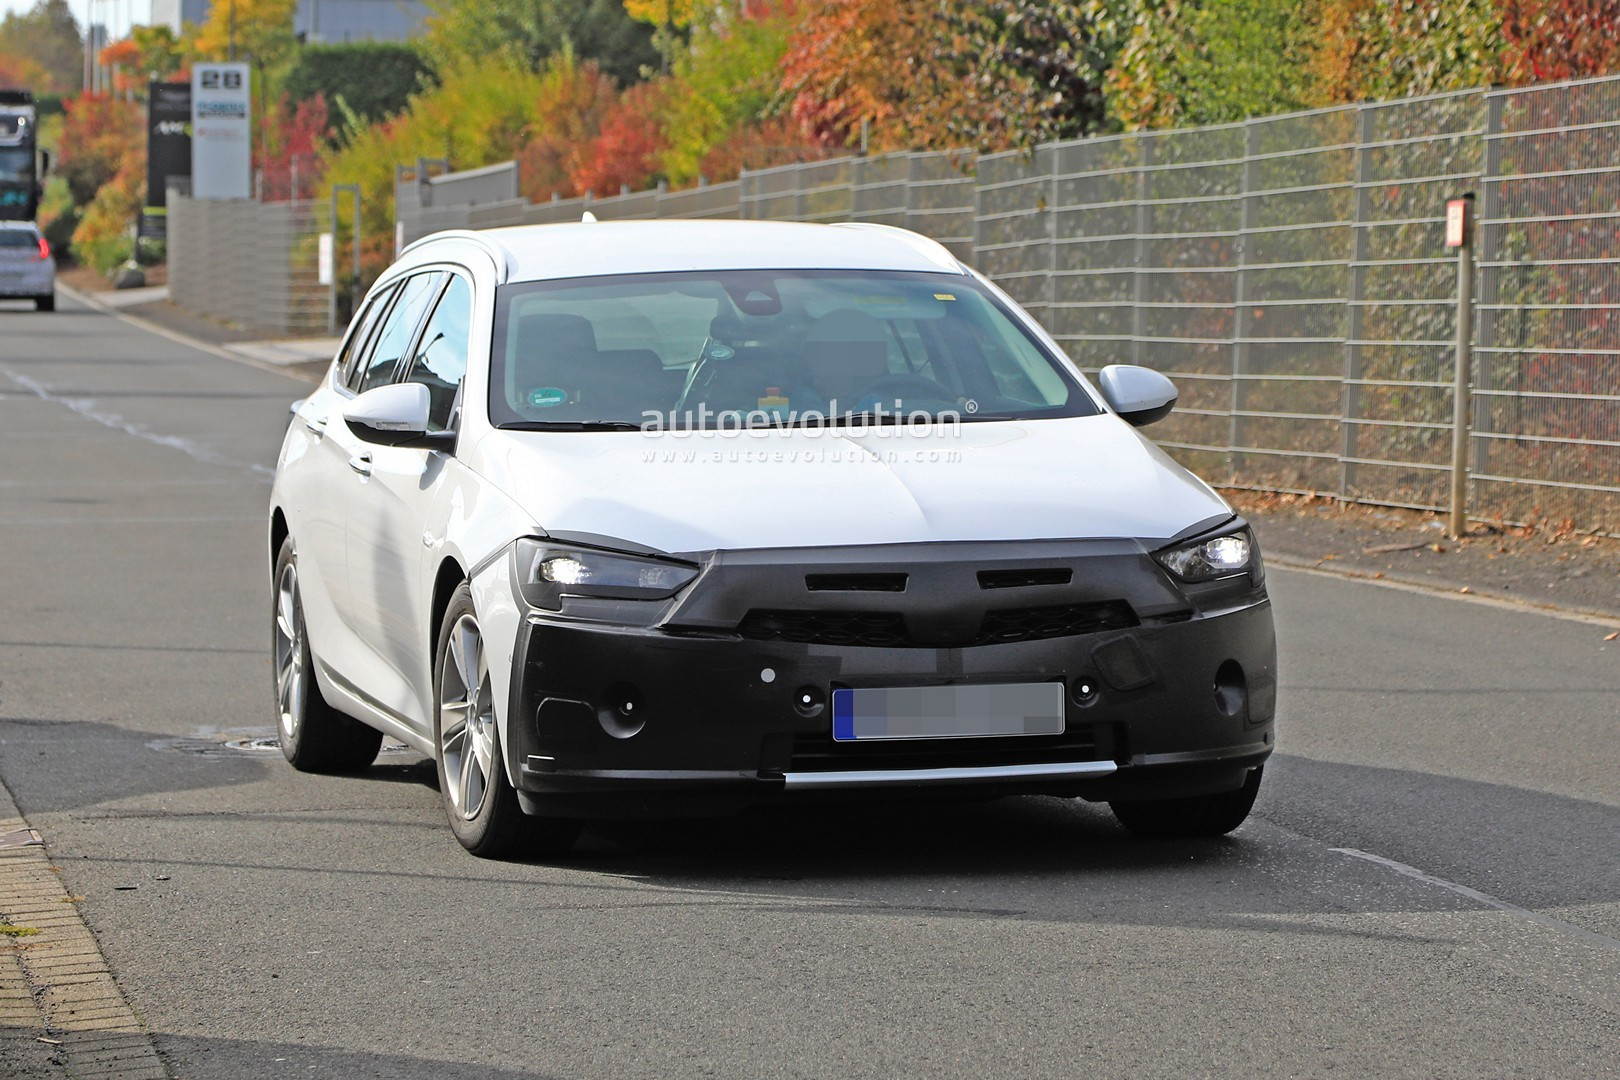 2020 - [Opel] Insignia Grand Sport Restylée  2020-opel-insignia-facelift-makes-spyshots-debut-as-camouflaged-wagon_2